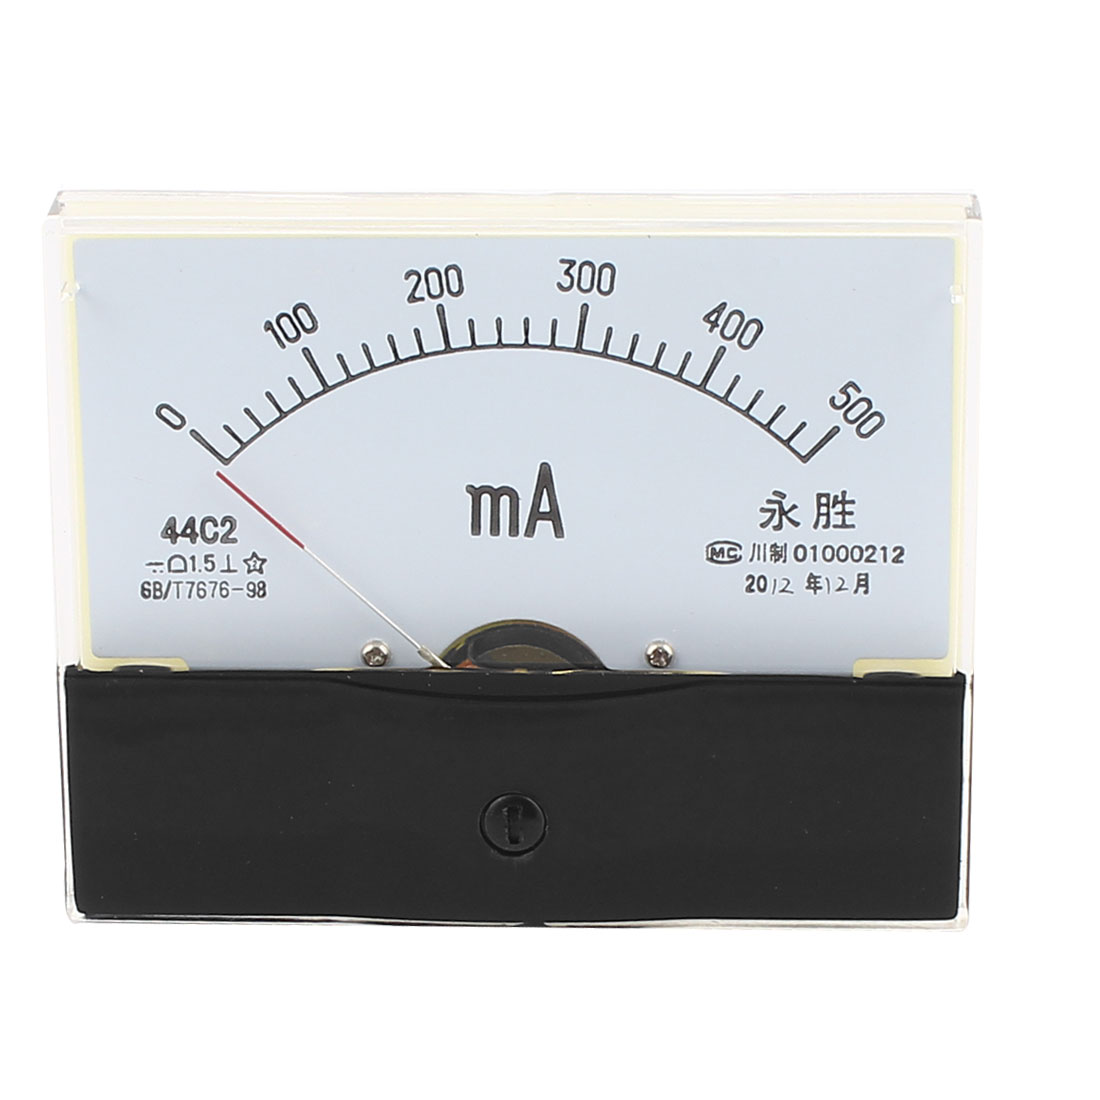 Class 1.5 Accuracy DC0-500mA Dial Analog Panel Meter Gauge 44C2